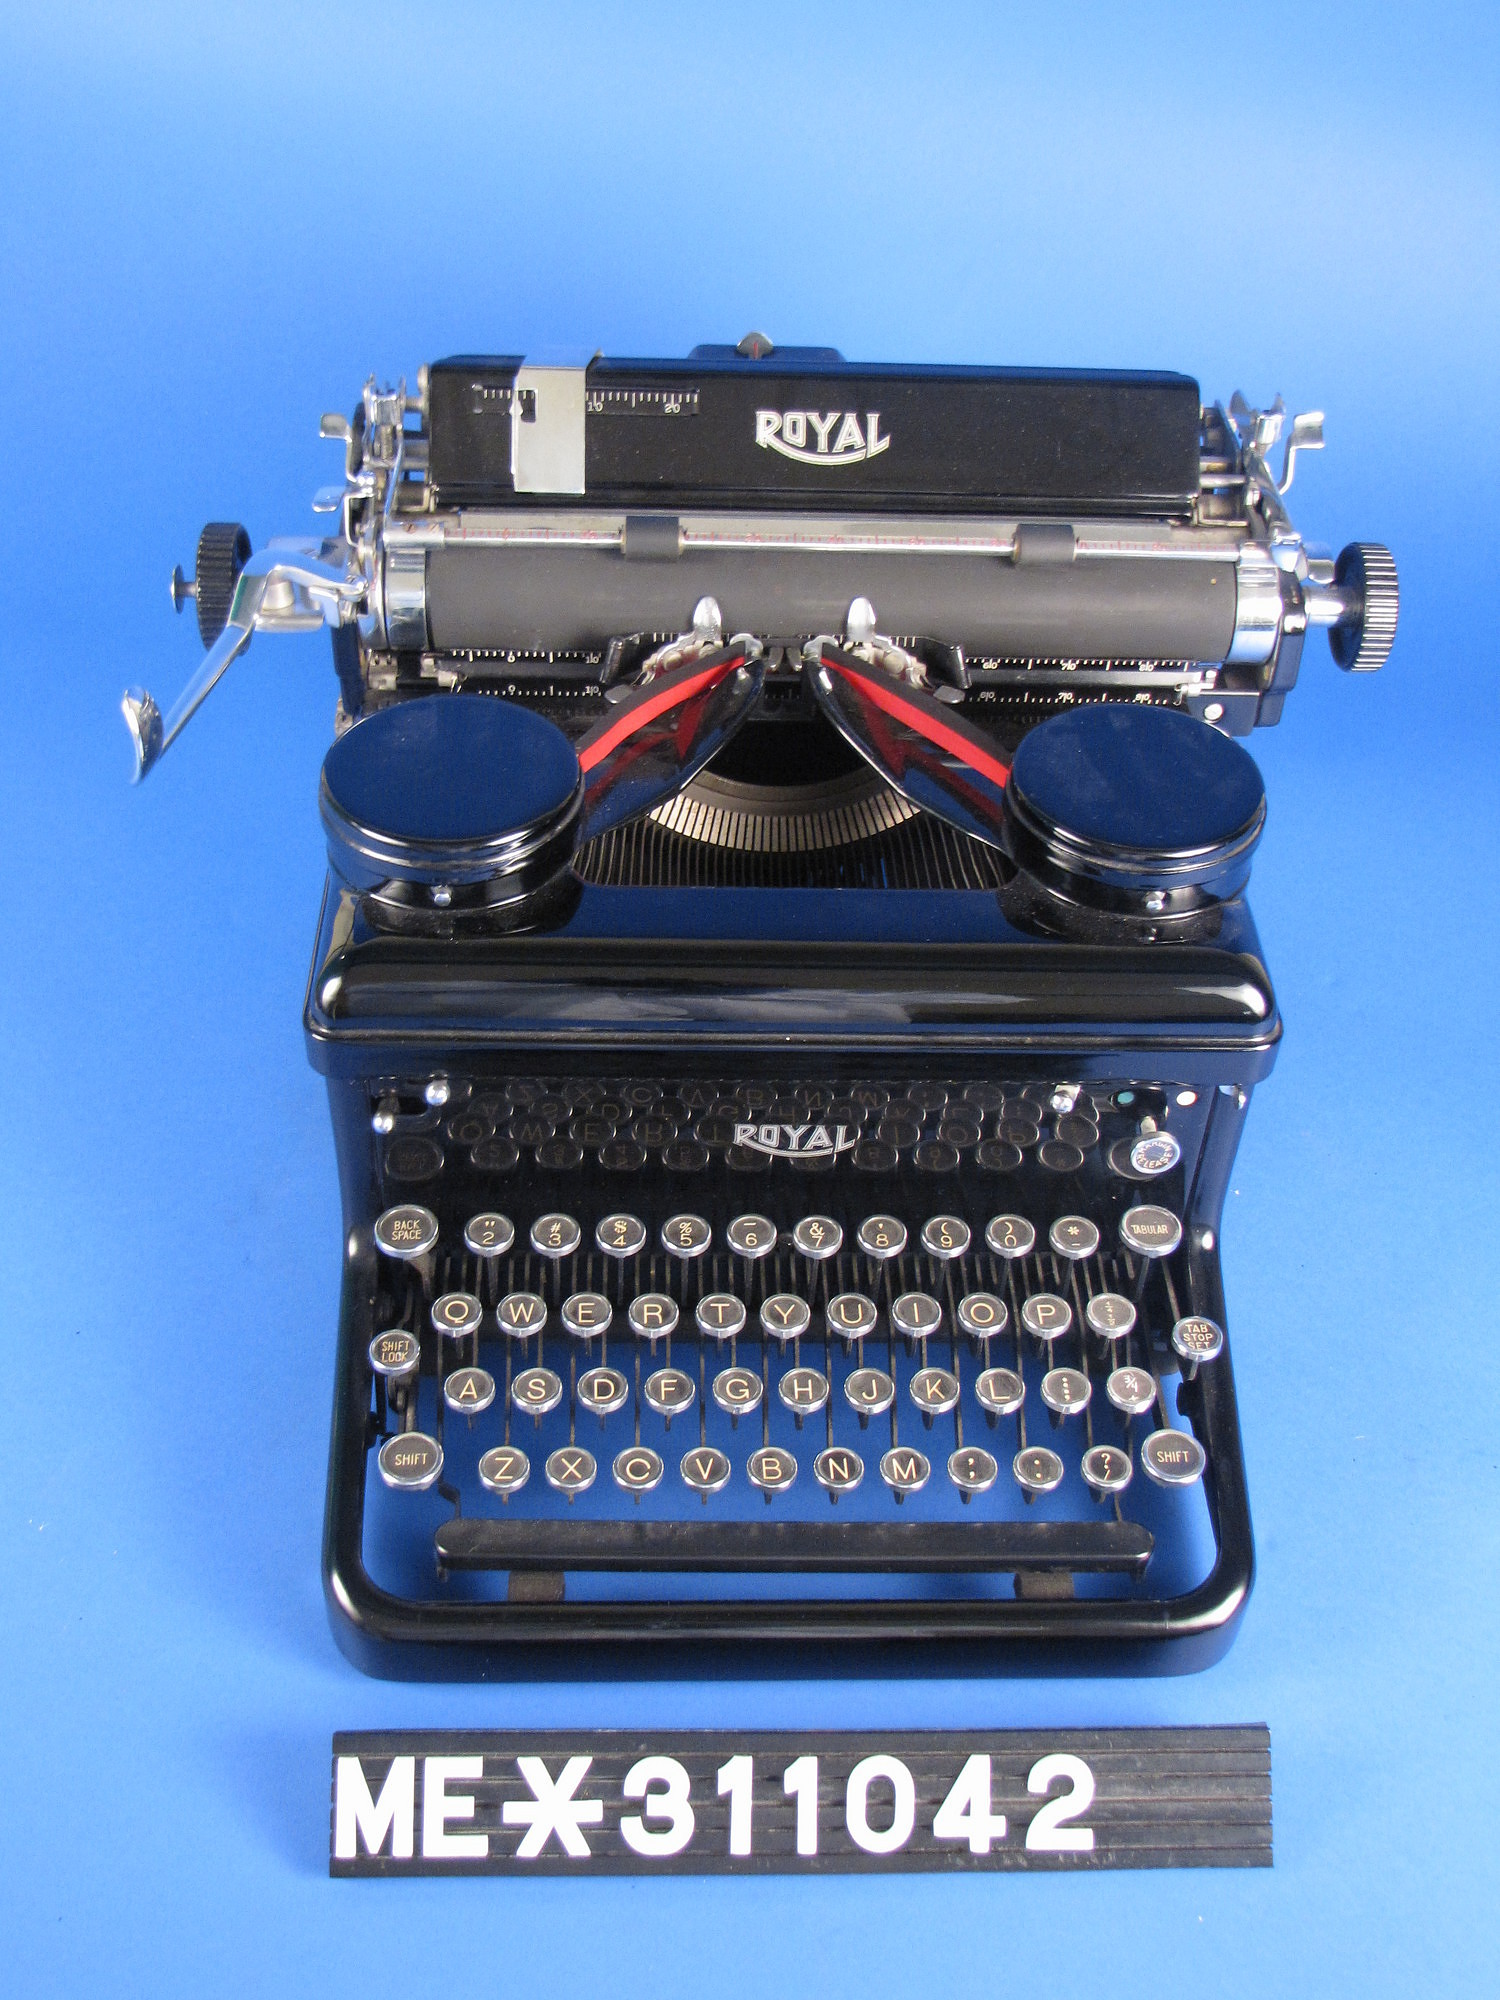 Royal KHM Typewriter